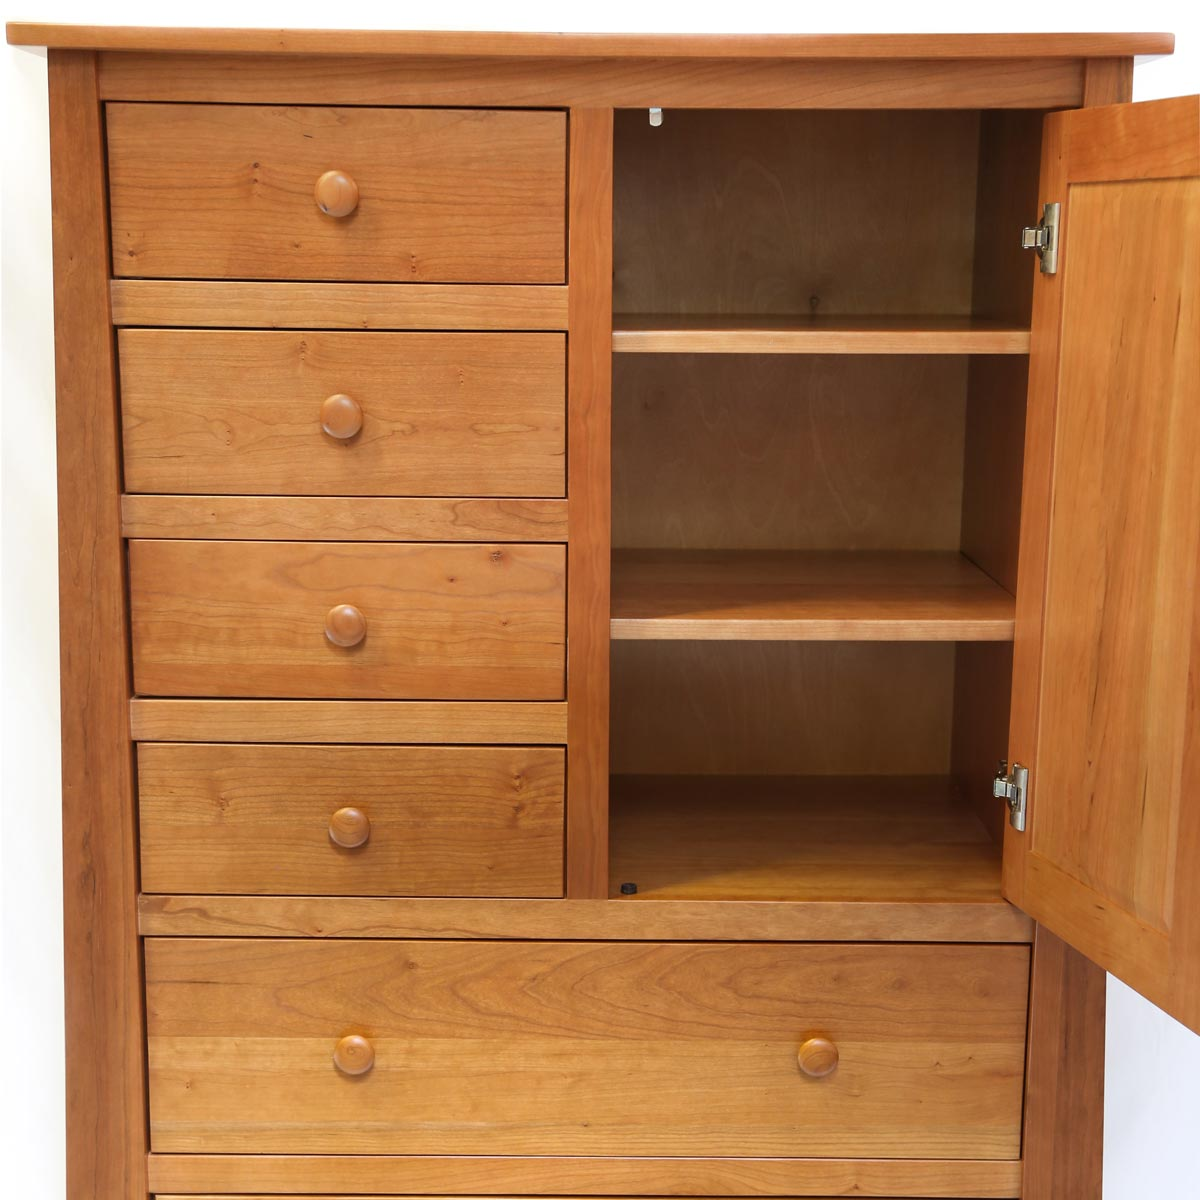 Open door on Bangor Gentleman's Chest showing shelving storage